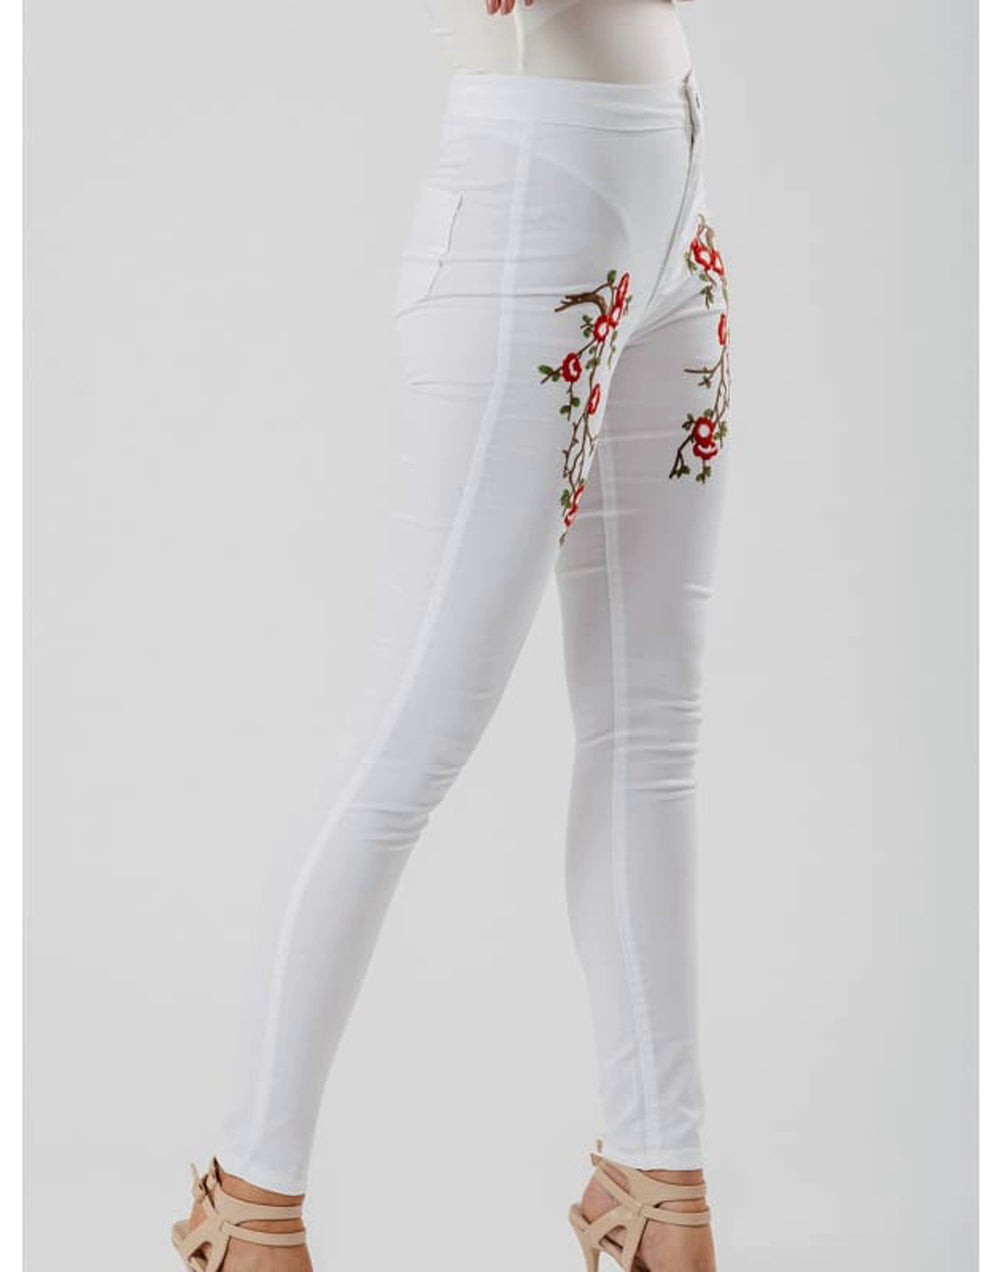 White Floral Embroidered Skinny Jeans - Jeans & Jeggings embellished jeans embroidered skinny jeans fitted trousers floral embroidered jeans